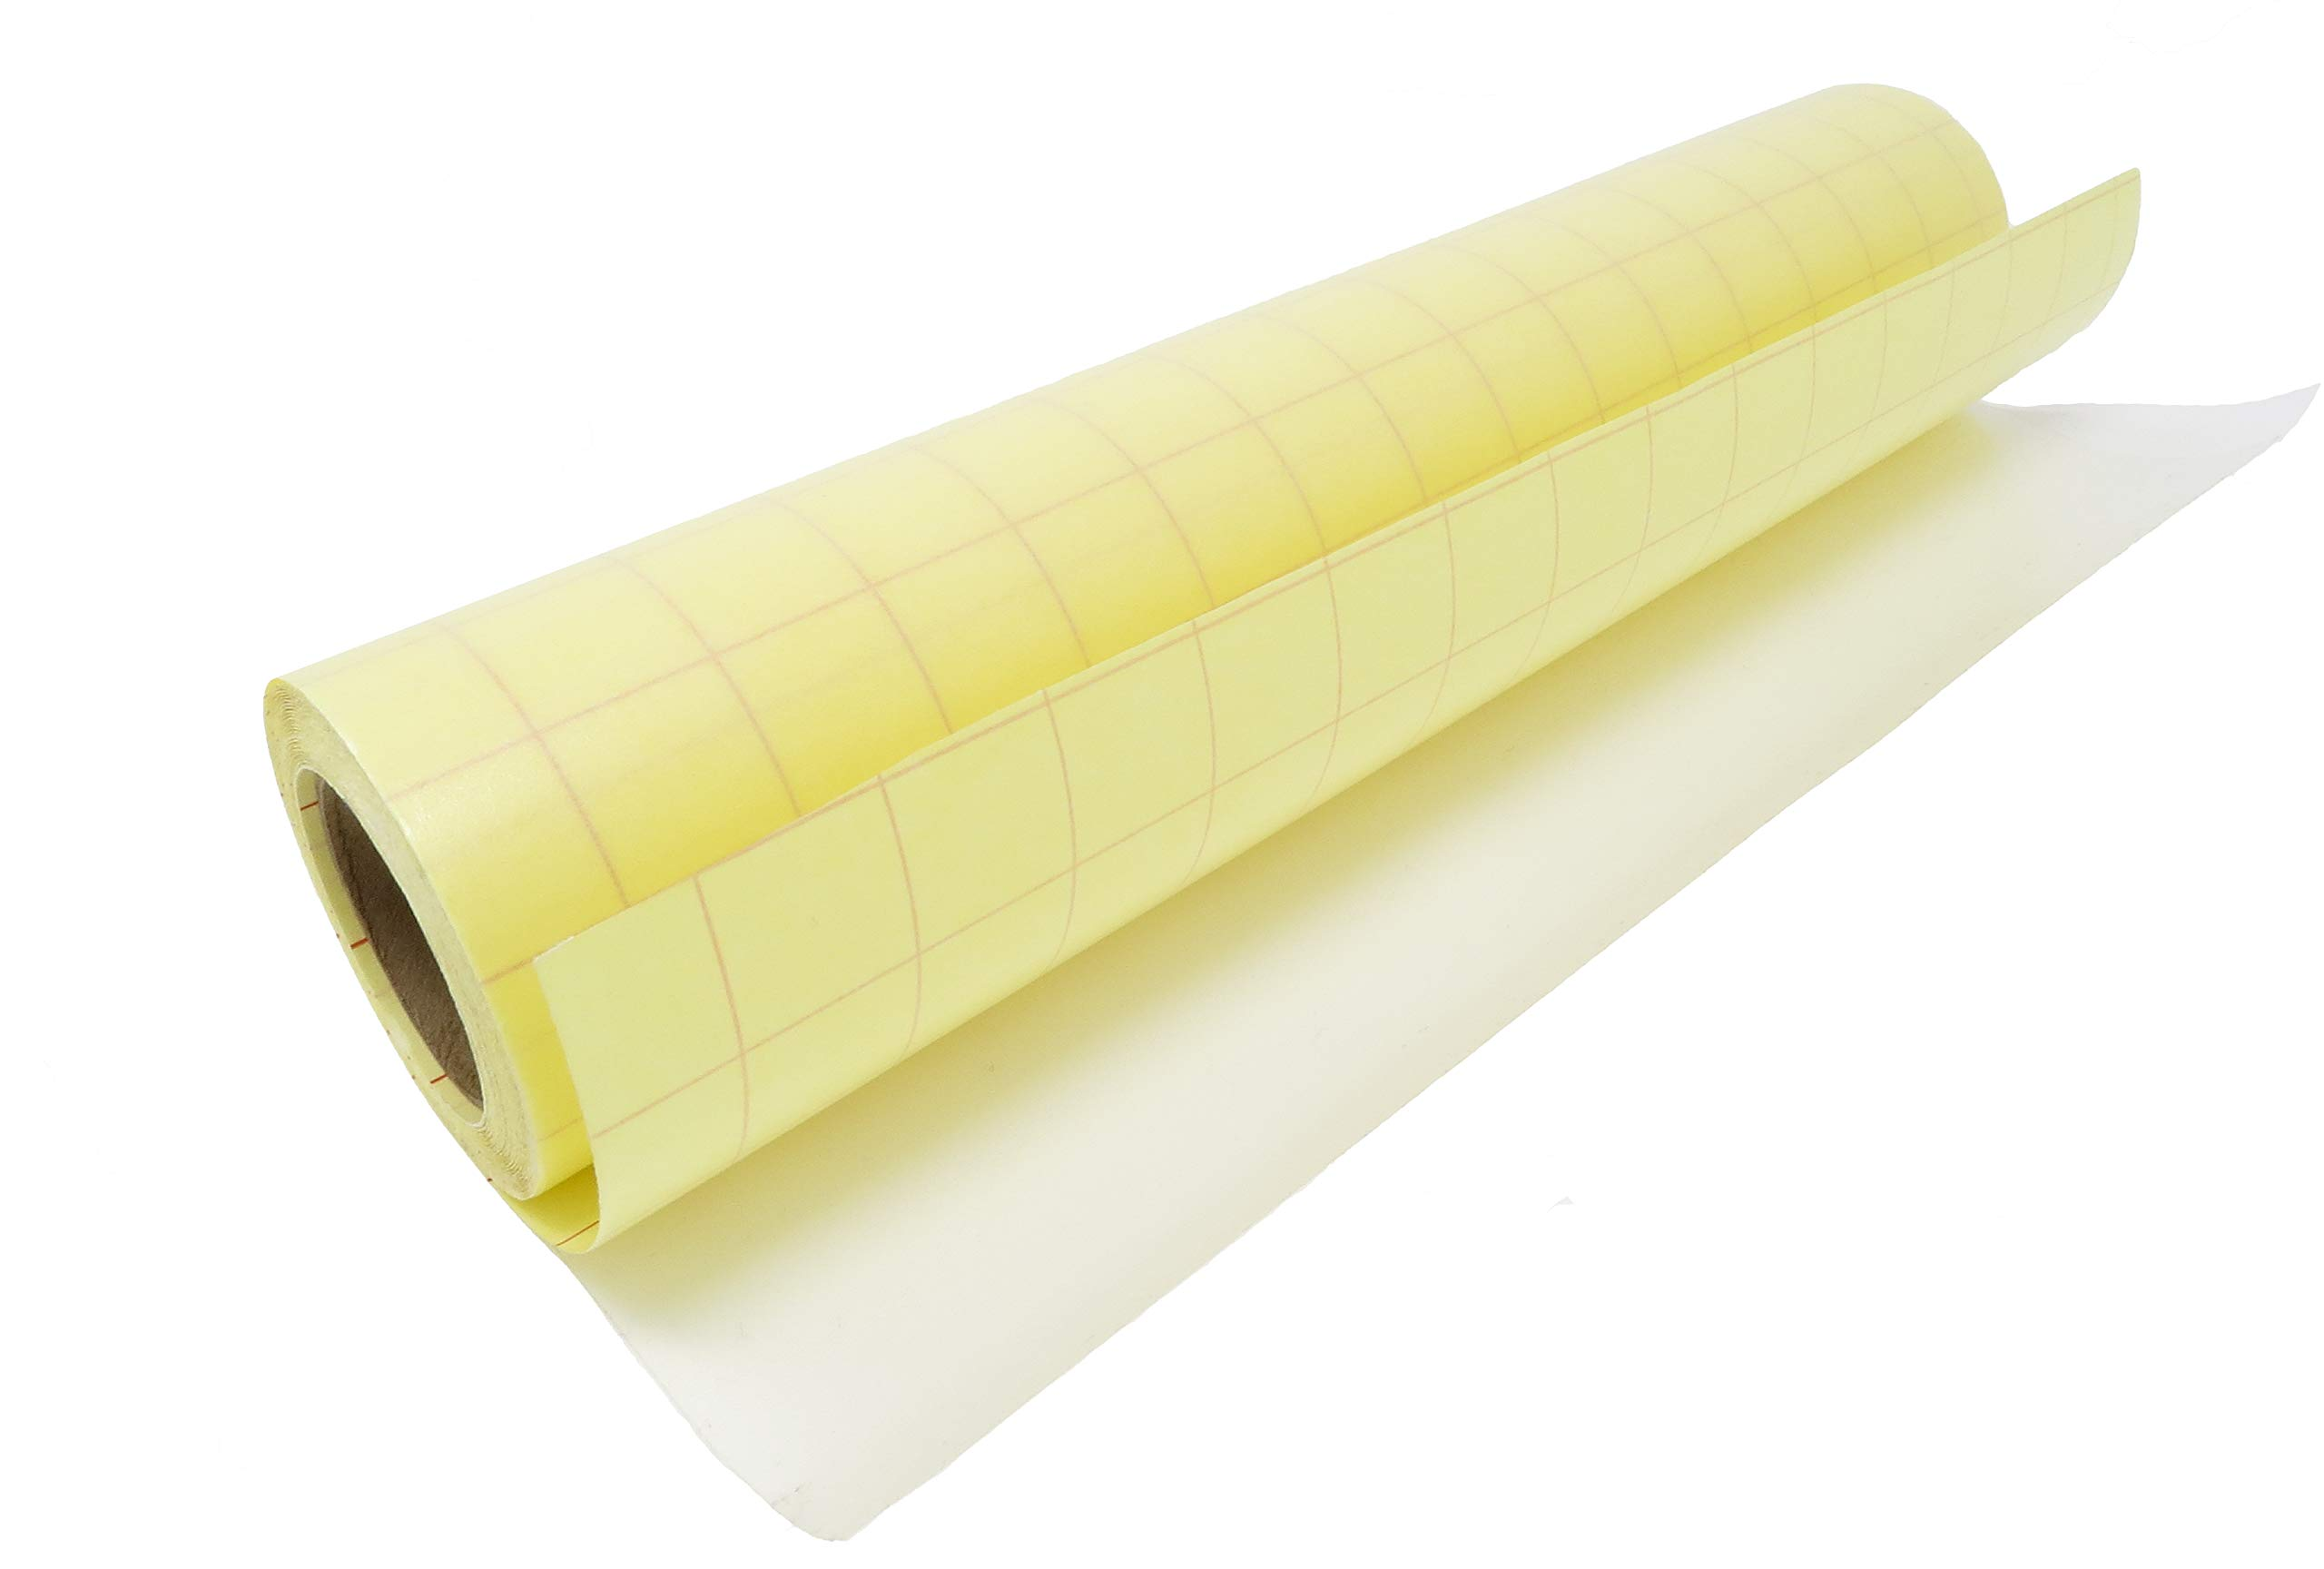 Styletech - Transfer Tape, 12'' by 30 FEET | Clear Vinyl Transfer Tape Roll by Styletech